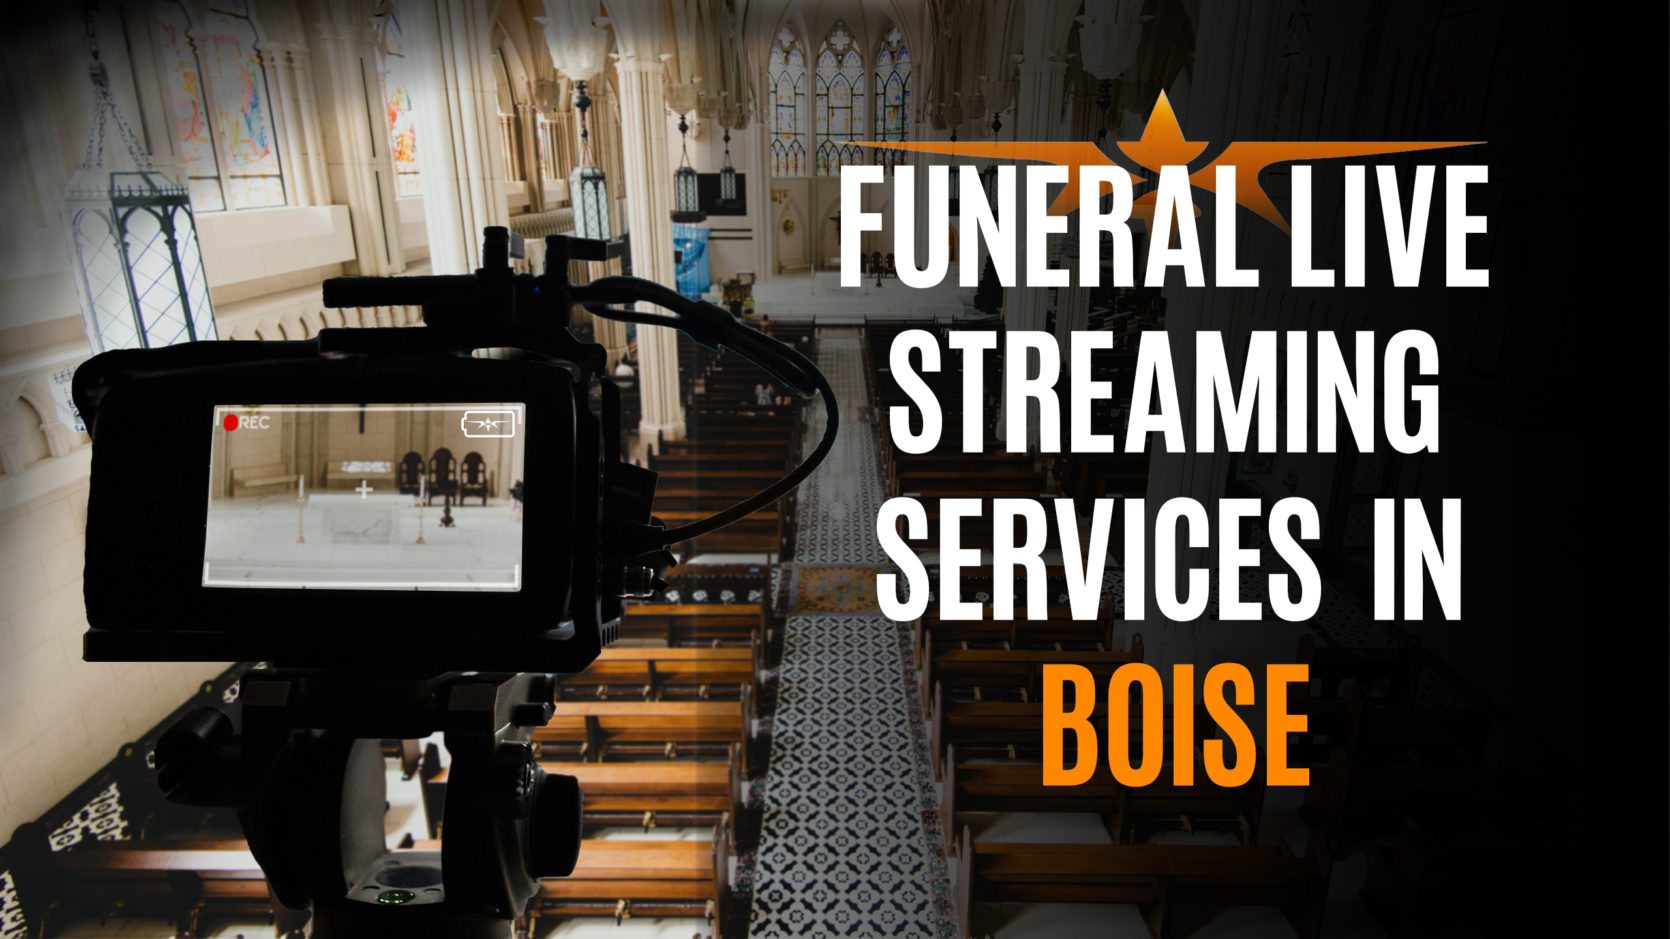 Funeral Live Streaming Services in Boise